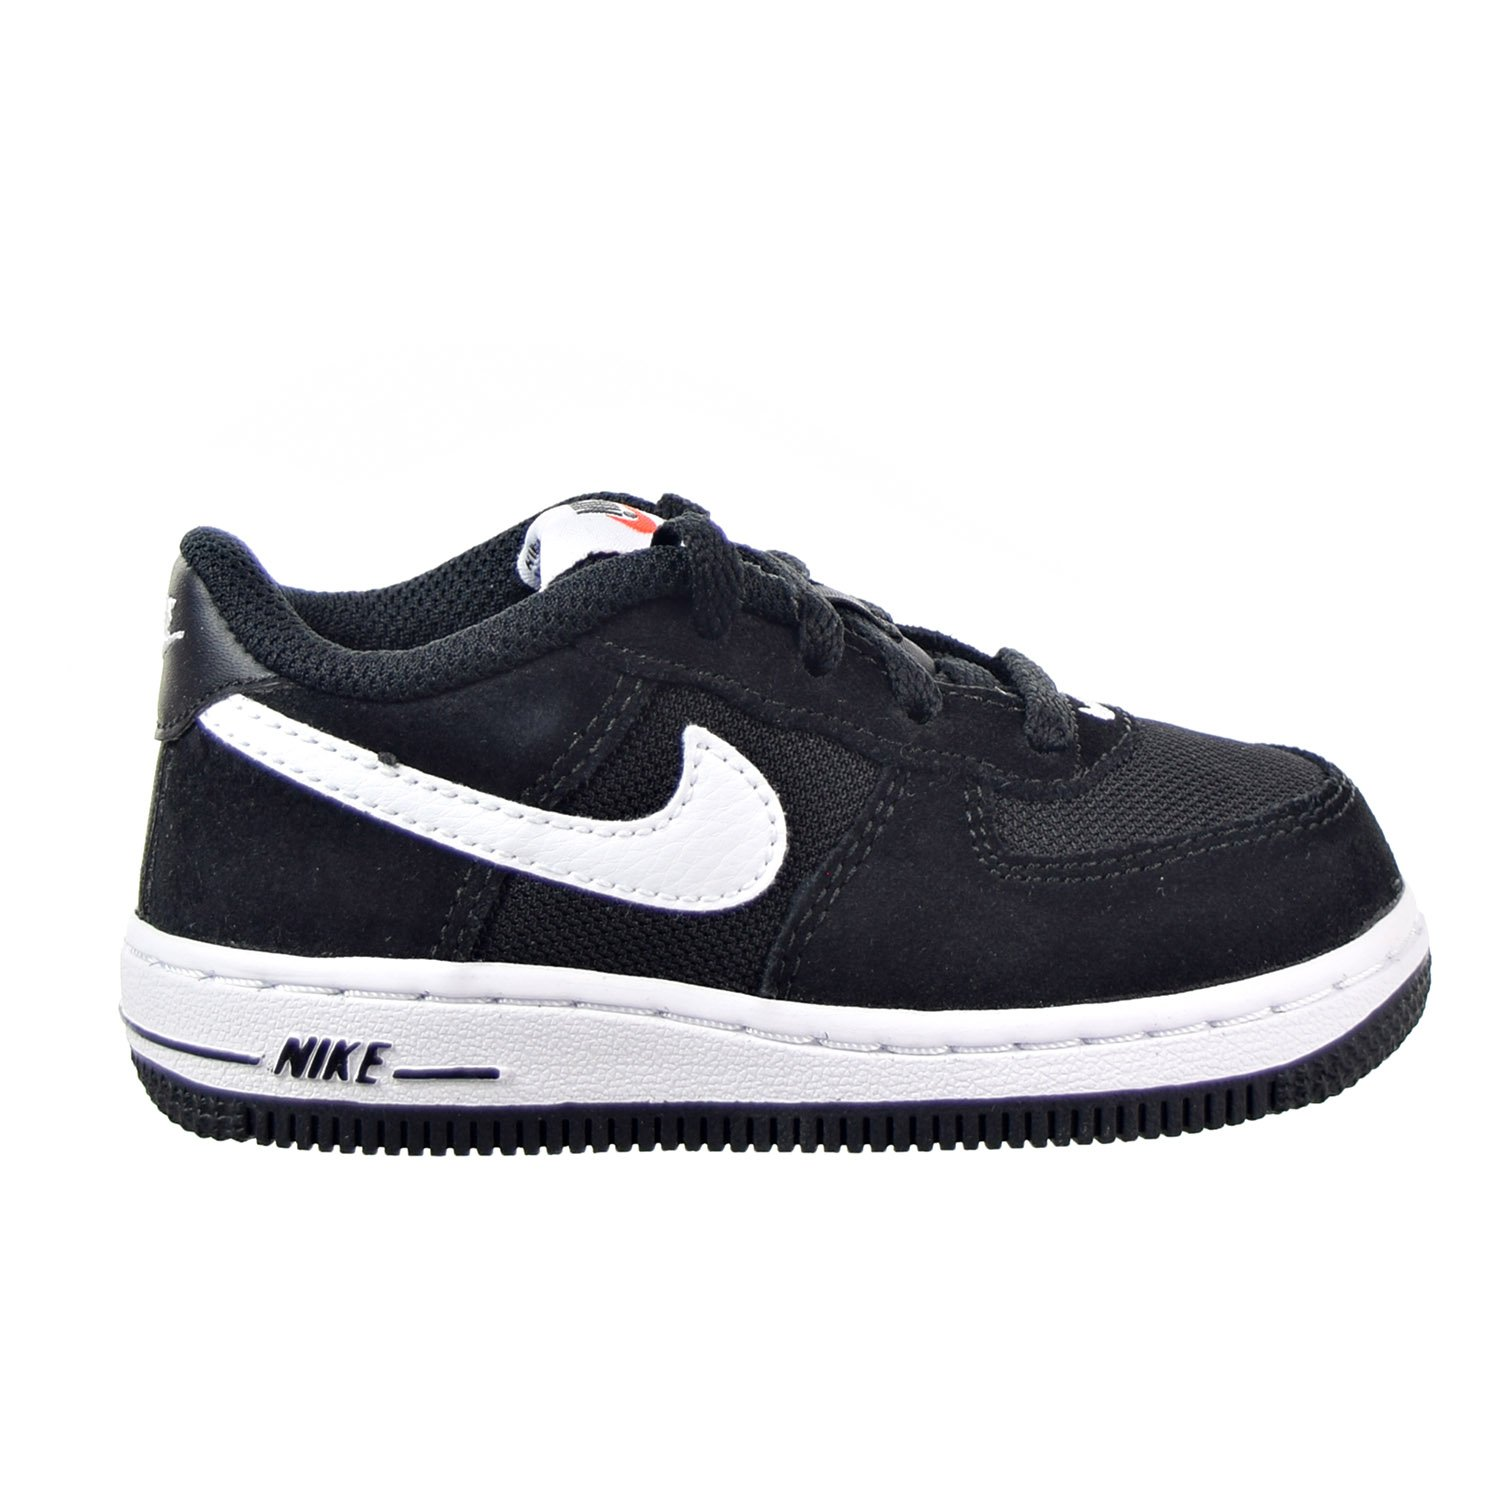 NIKE Force 1 TD Toddlers Shoes Black//White 596730-005